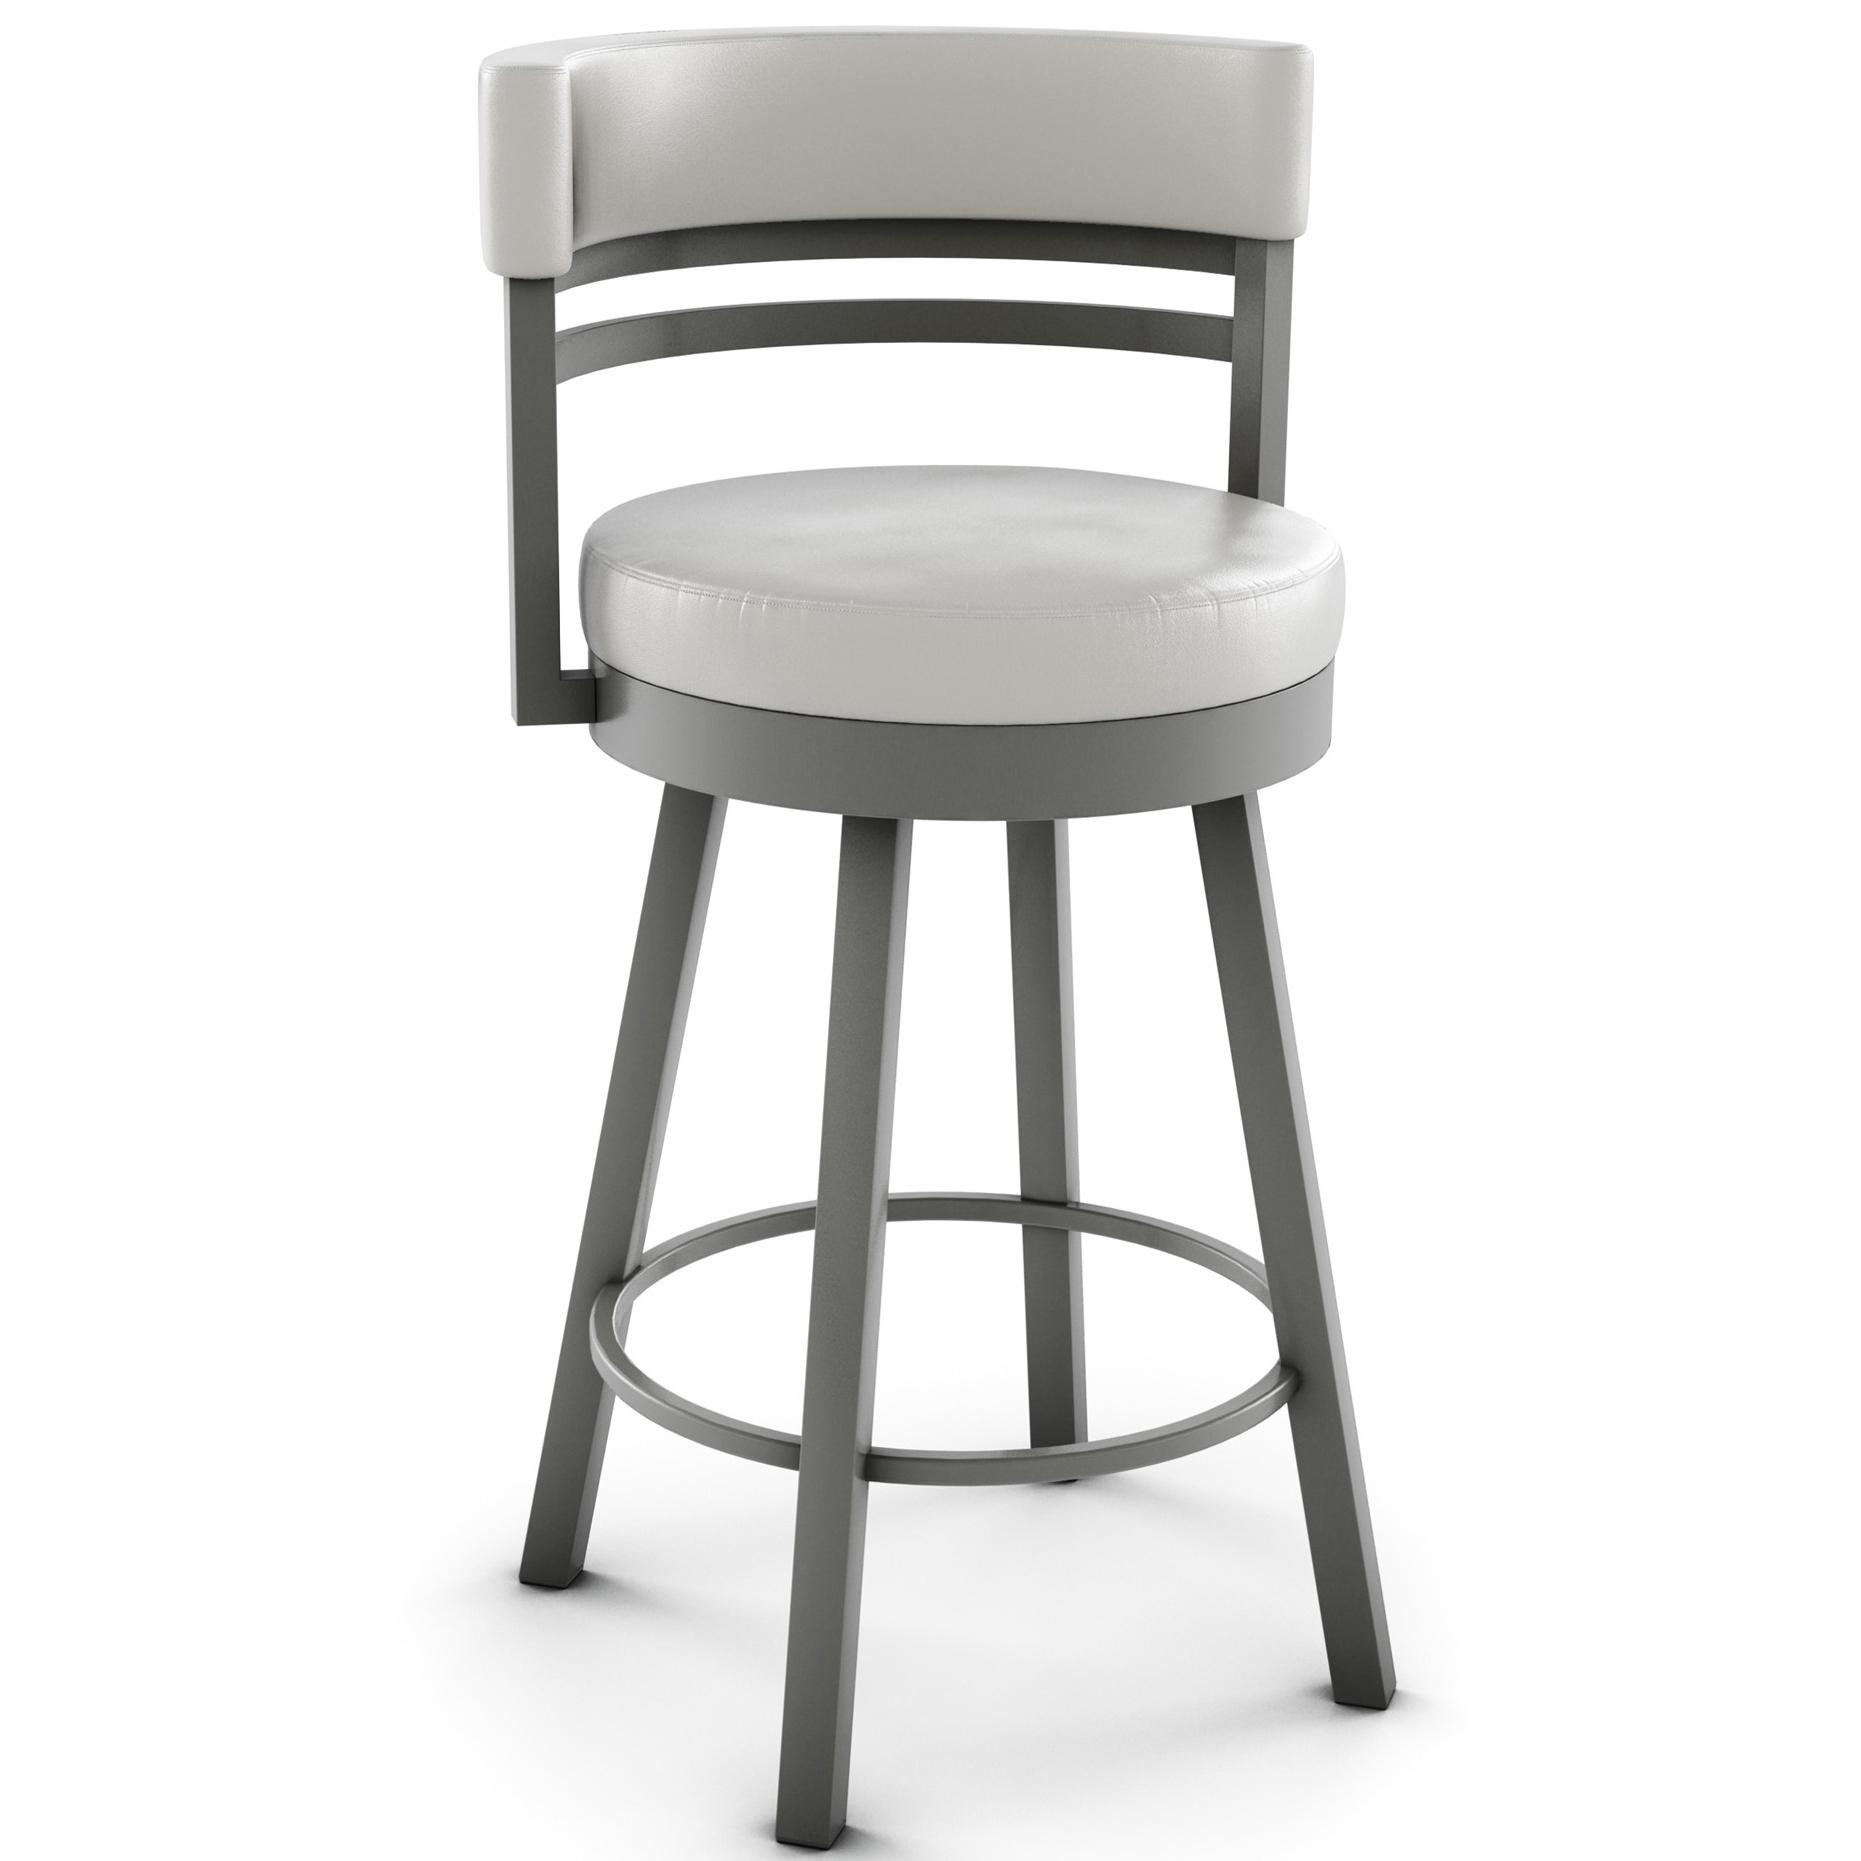 """Urban 26"""" Counter Height Ronny Swivel Stool by Amisco at Dinette Depot"""